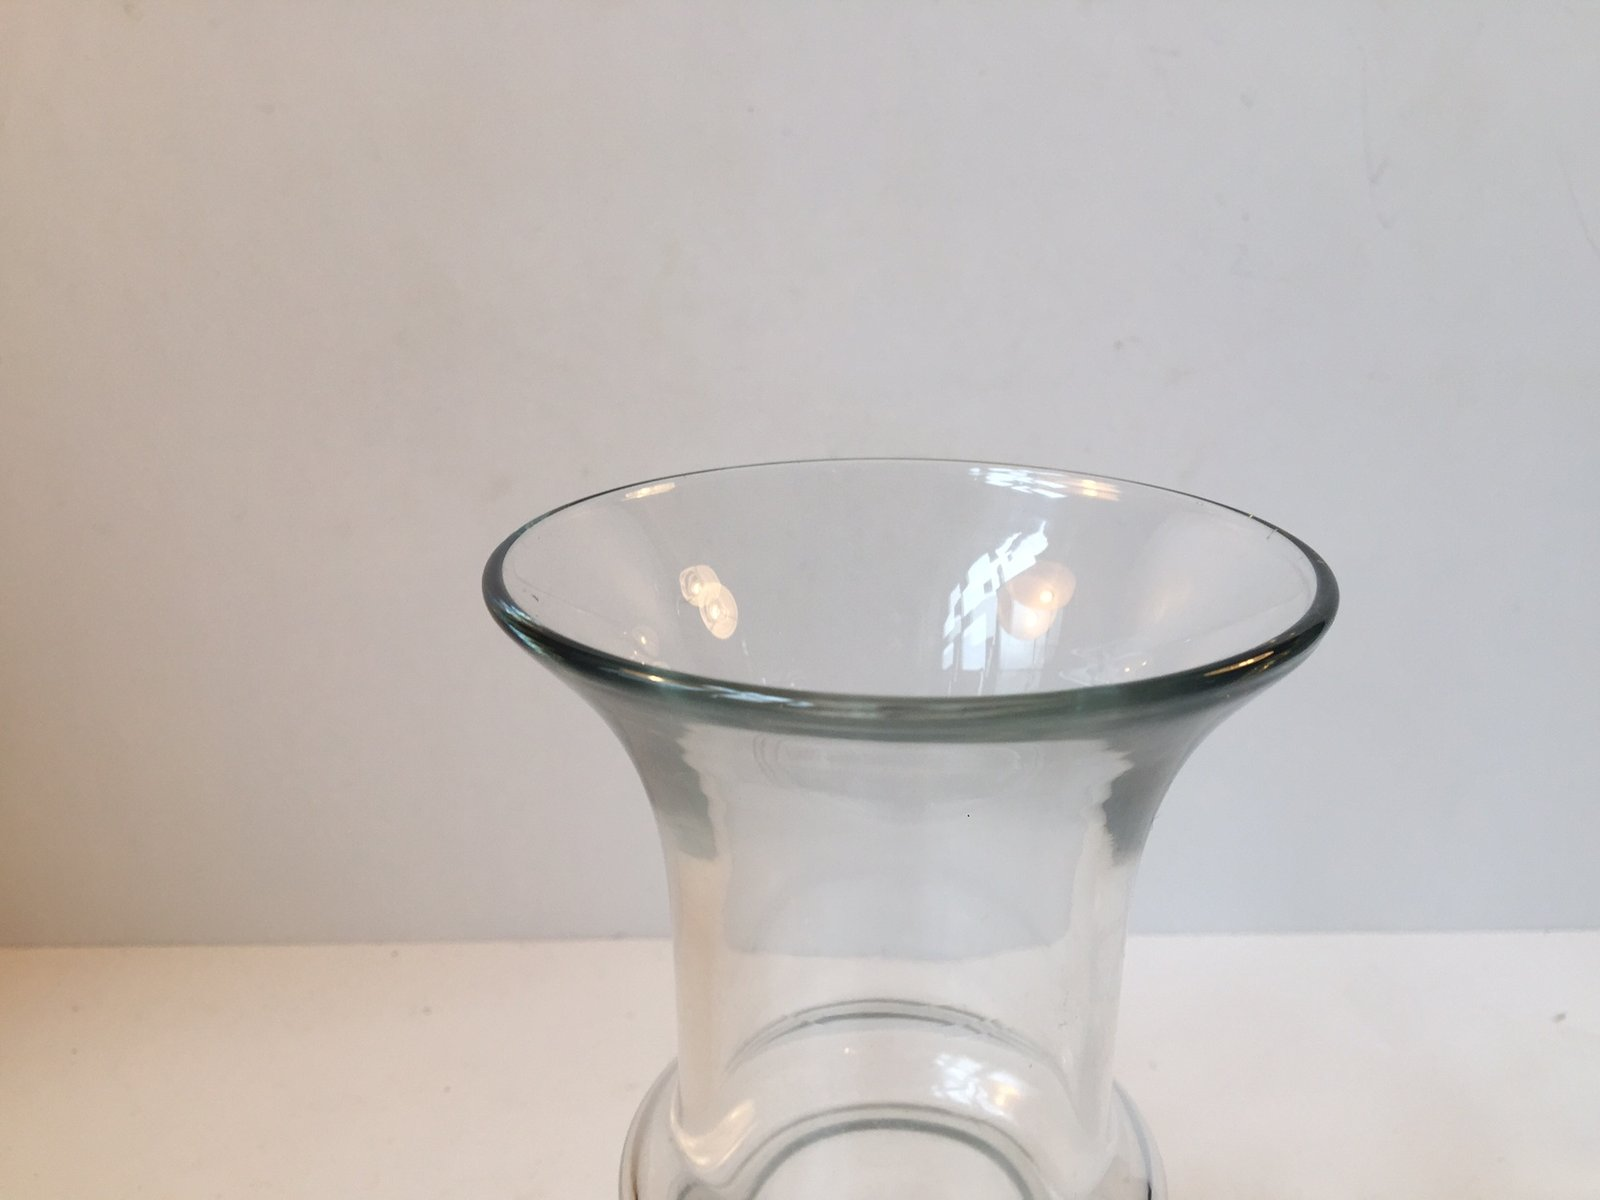 Chaise Aladin Modernist Hooped Glass Vase By Tamara Aladin For Riihimäen Lasi 1960s